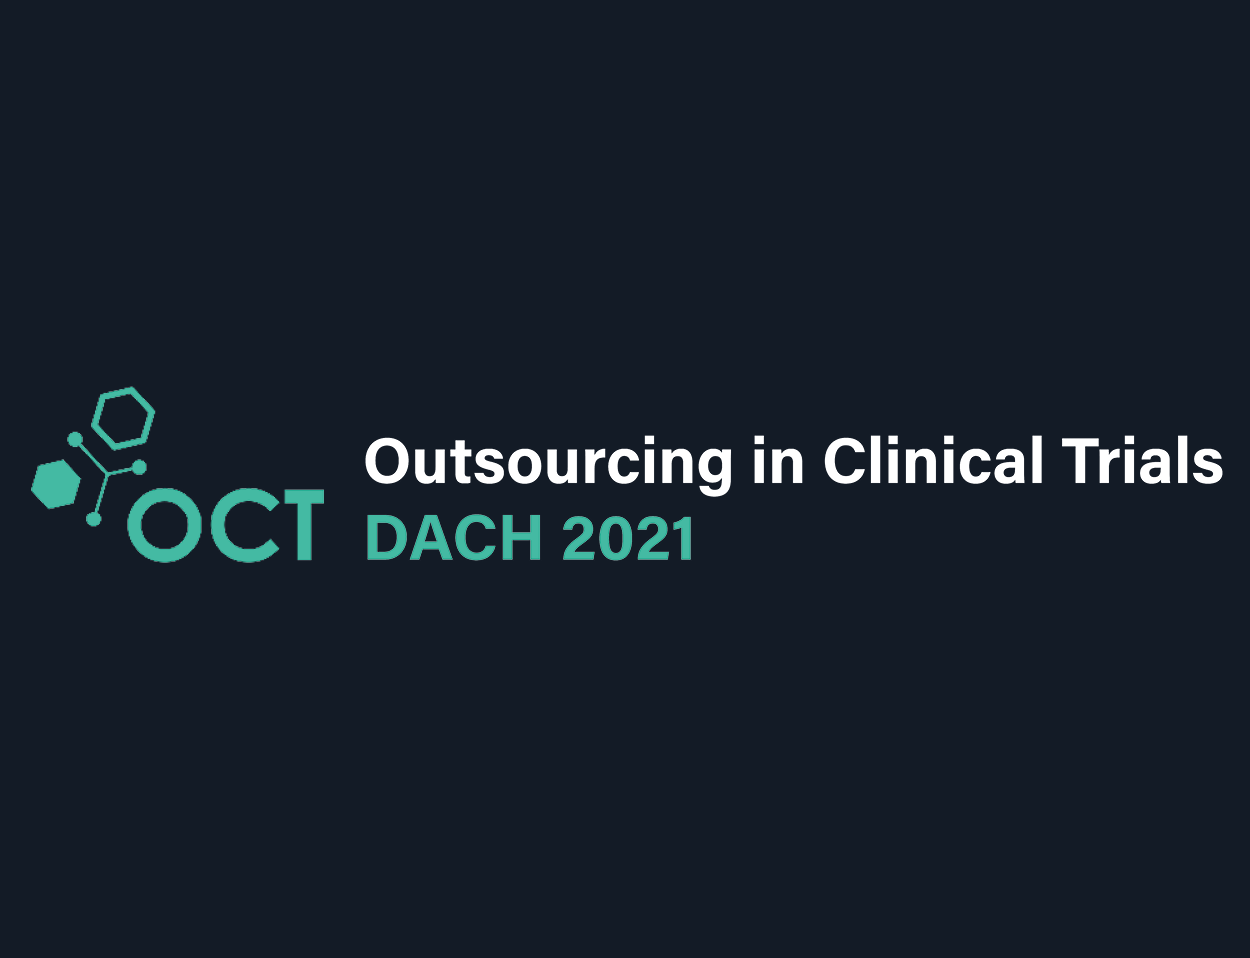 Outsourcing in Clinical Trials DACH 2021